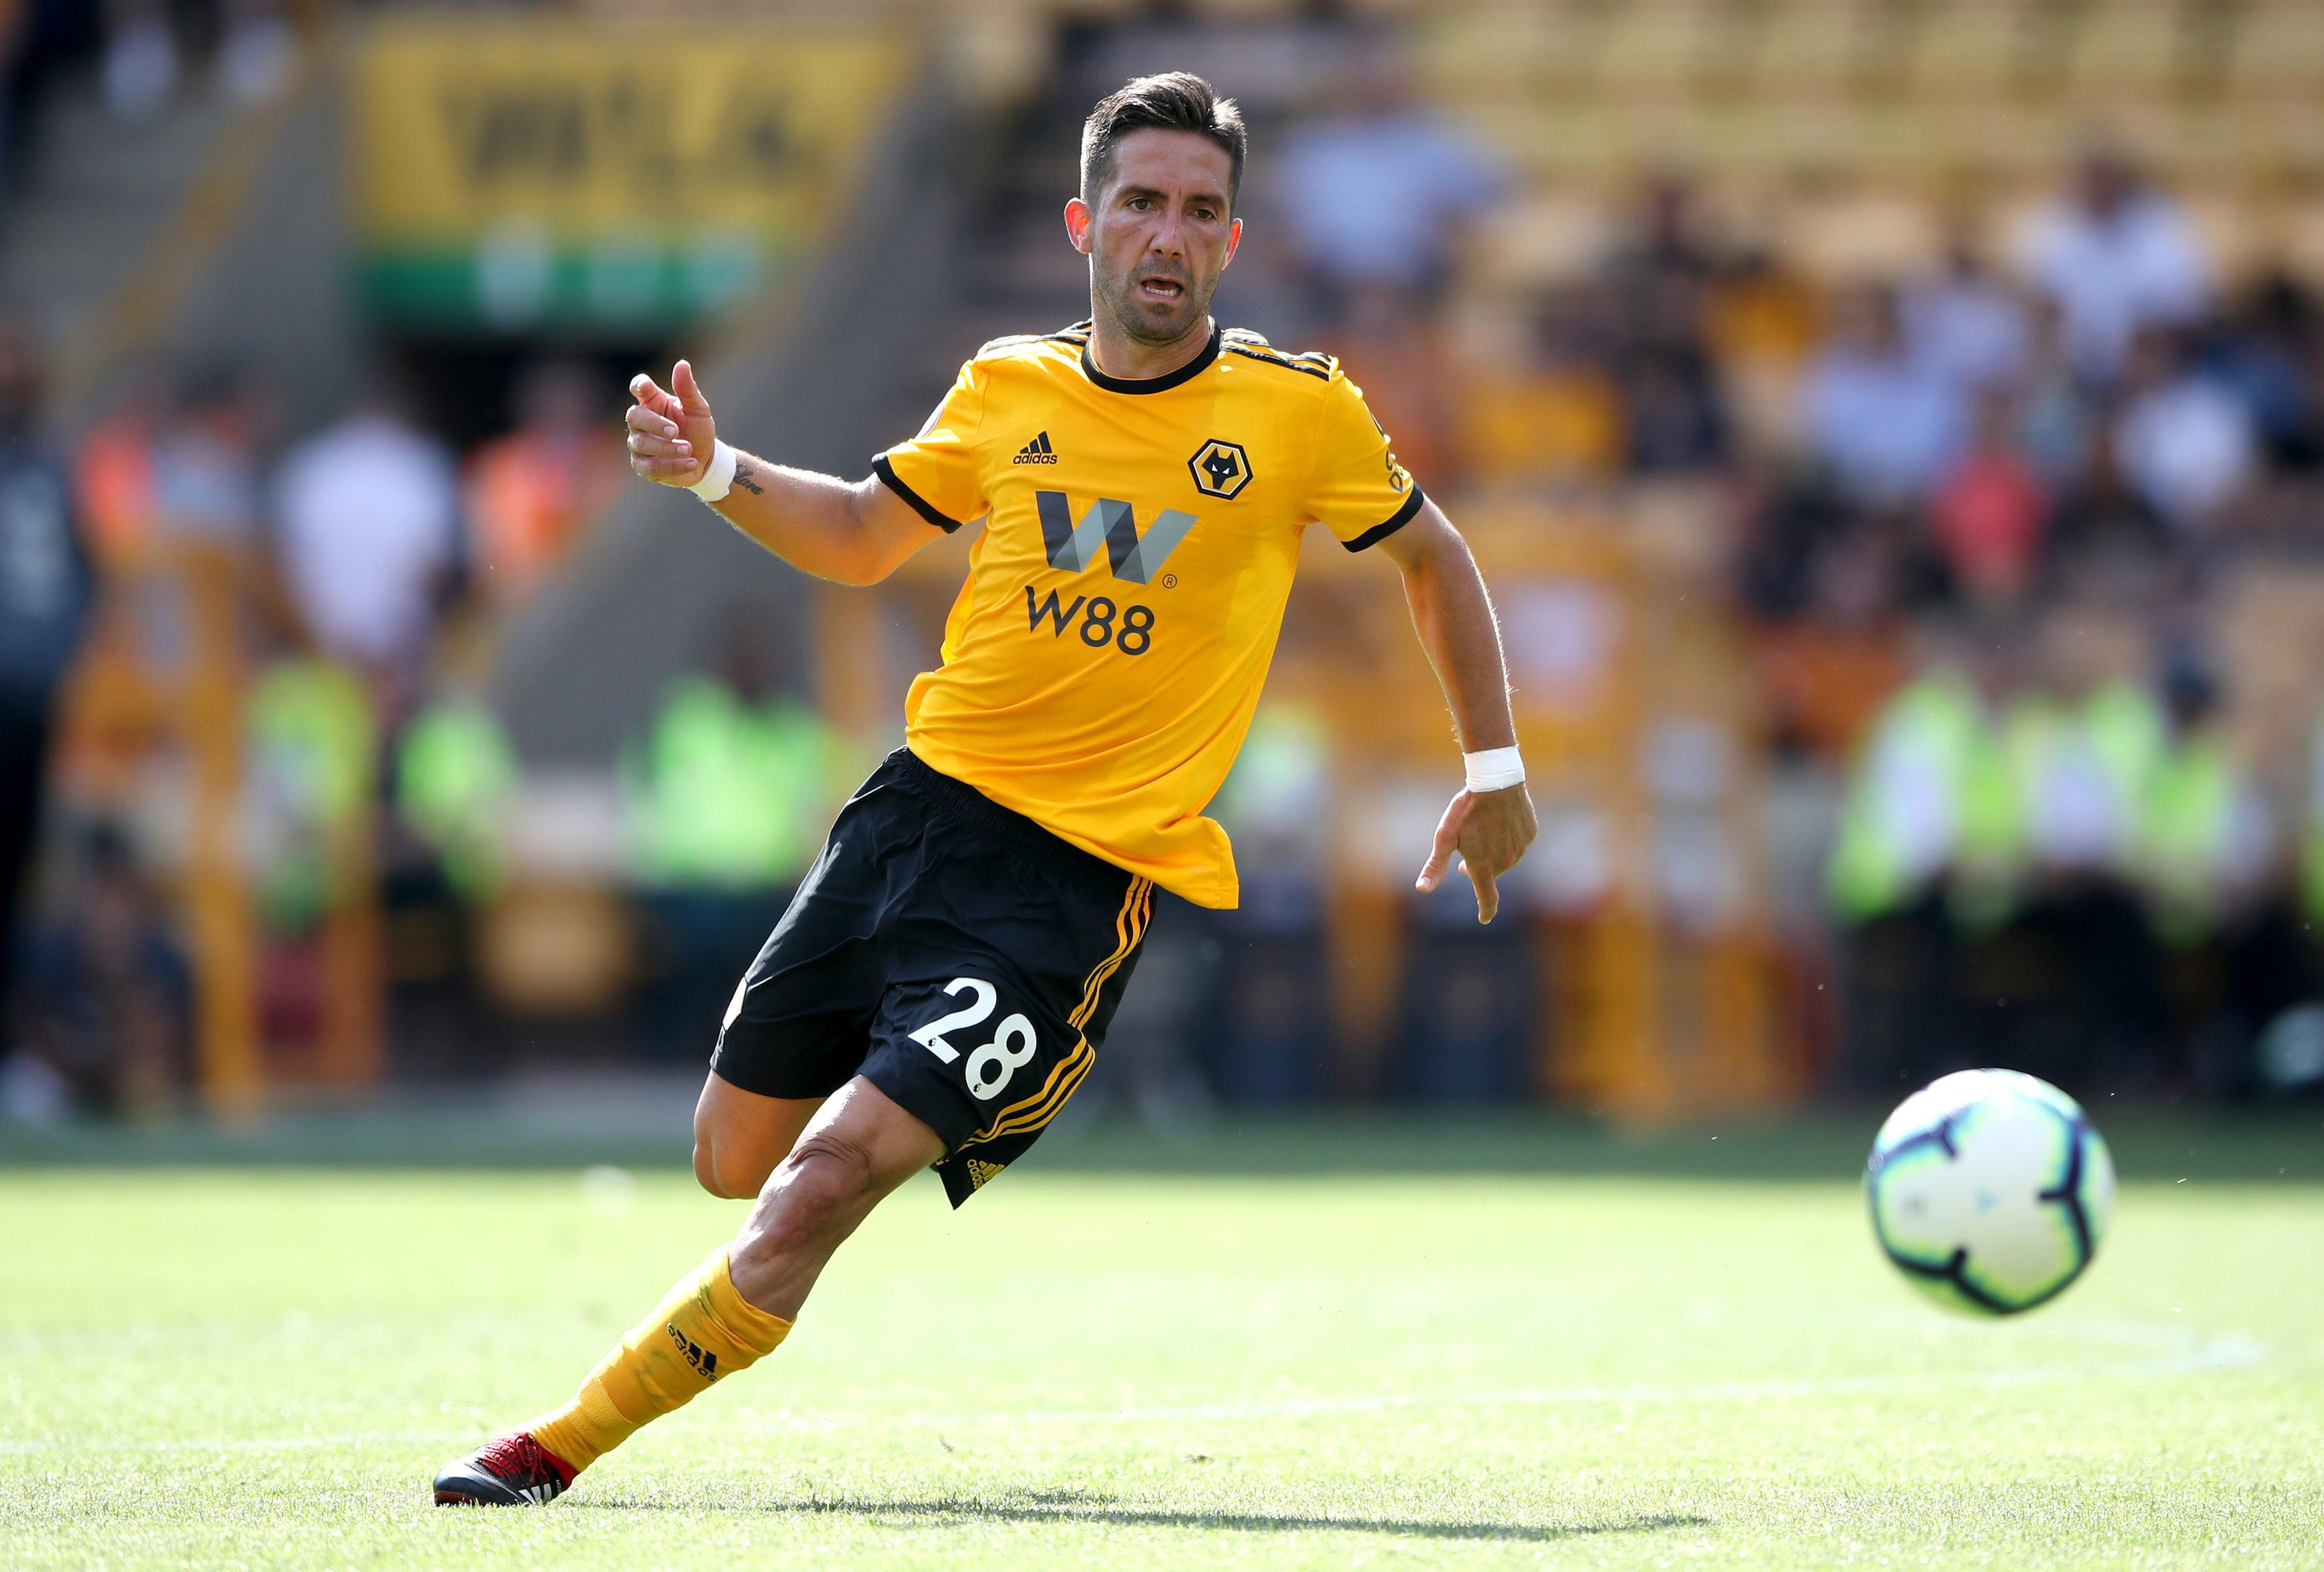 Joao Moutinho is an exciting signing for Wolves